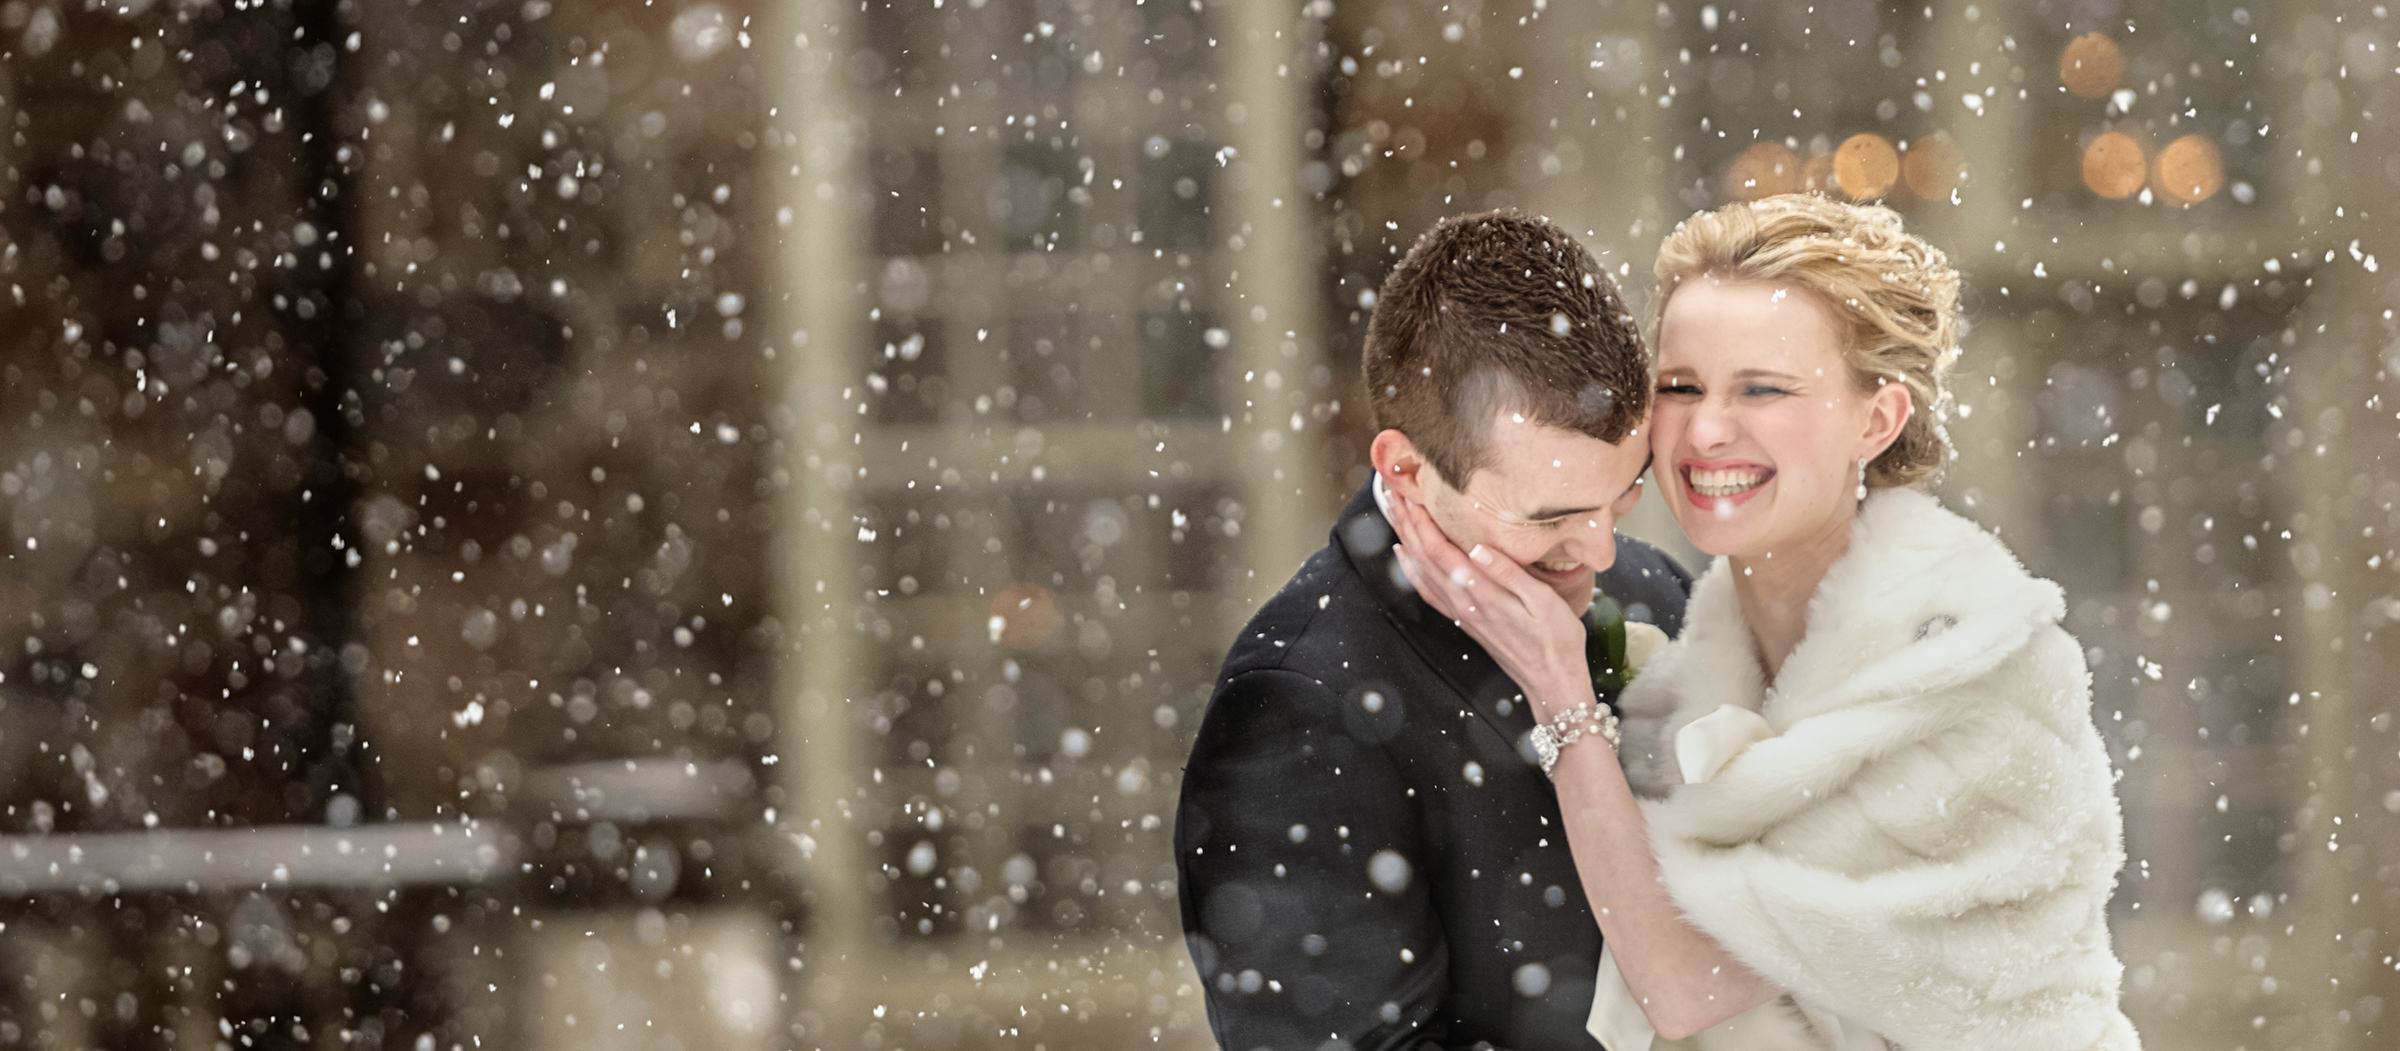 Sweet couple portrait in falling snow - photo by David & Sherry Photography